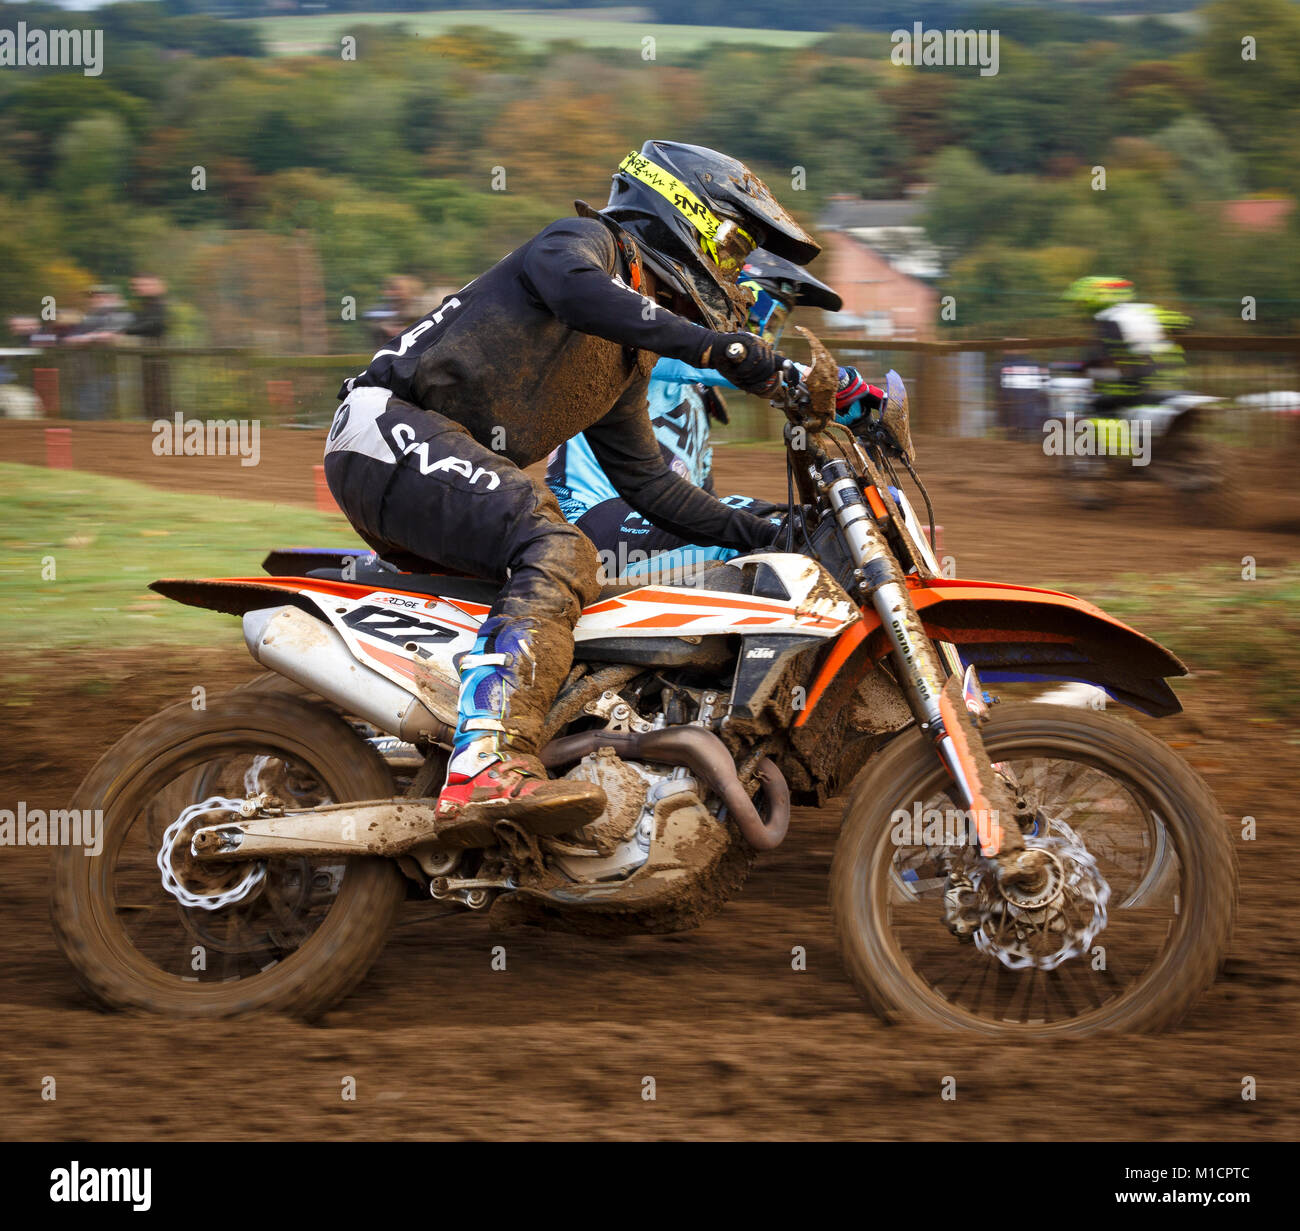 James Suckling on the Ridge Racing KTM 450 at the NGR & ACU Eastern EVO Solo Motocross Championships, Cadders - Stock Image